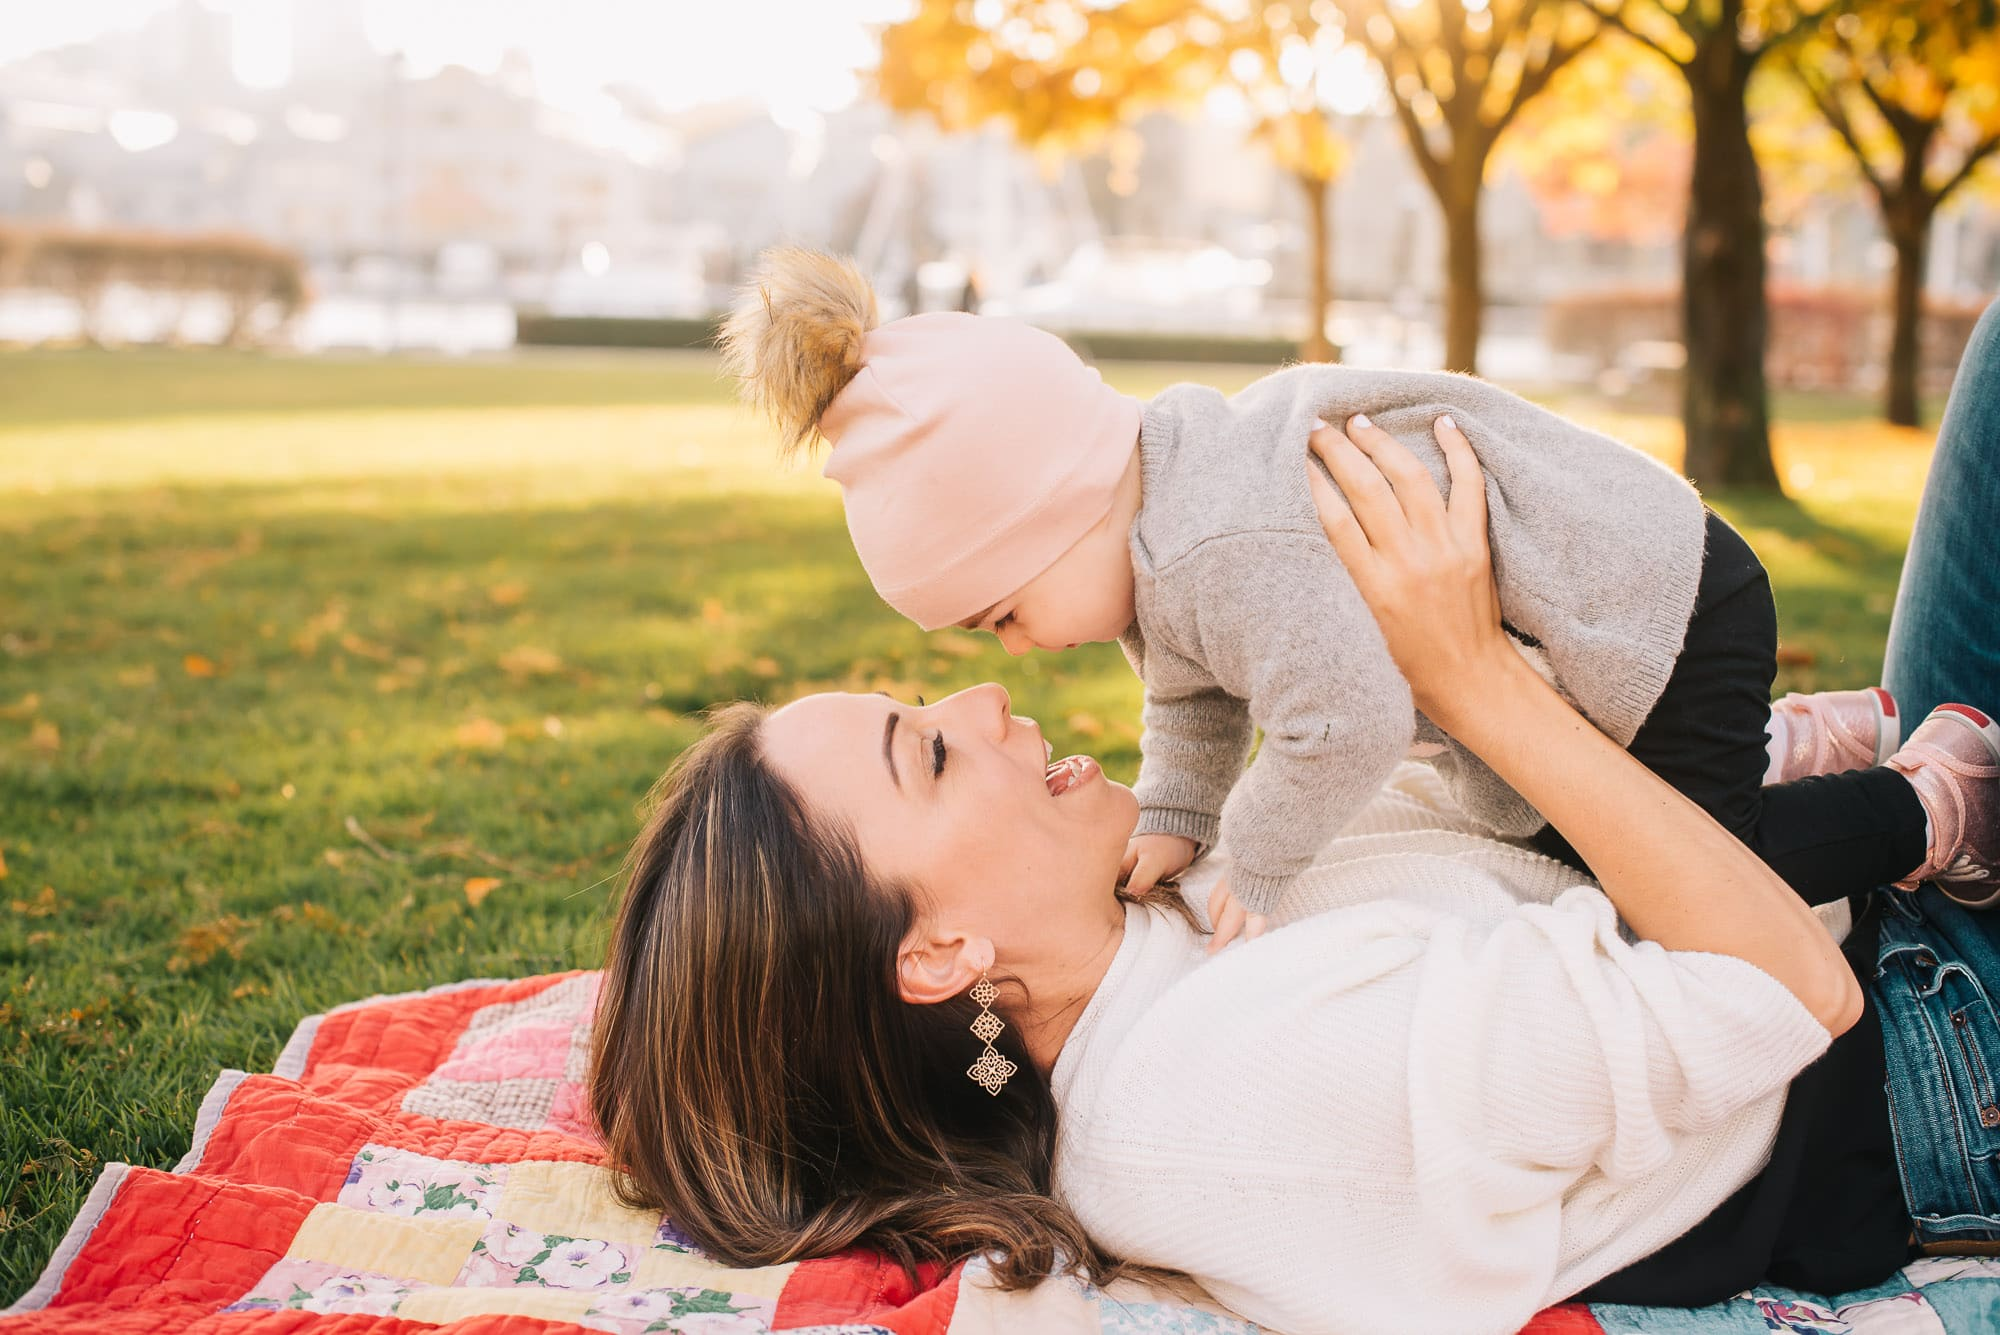 Vancouver Family Photographer captures sweet kisses between mom and daughter